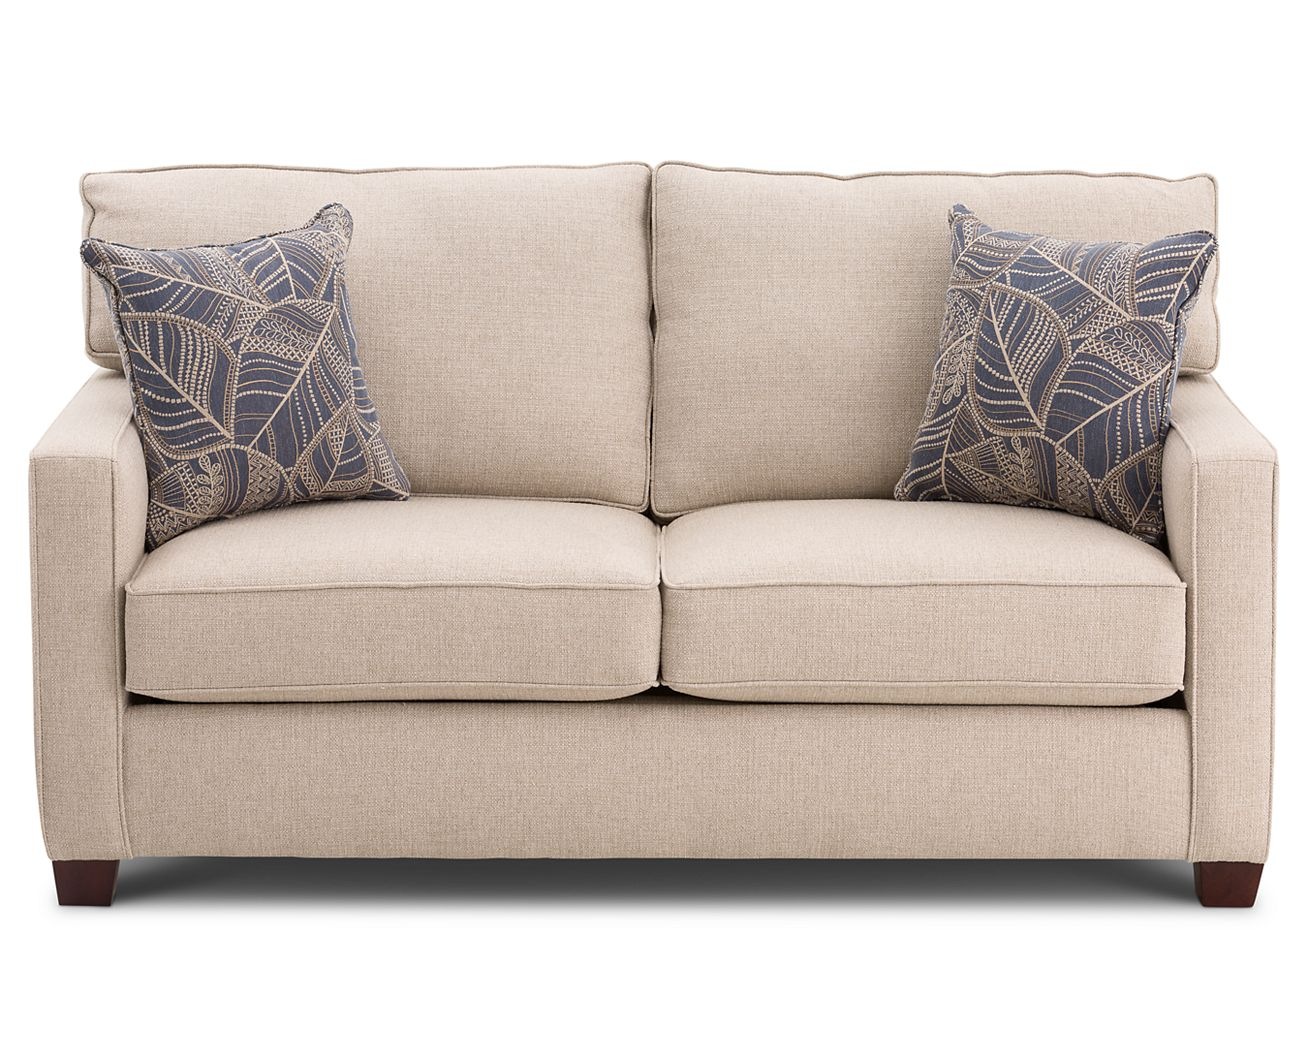 toscana loveseat sleeper  furniture row - full screen rollover to zoom